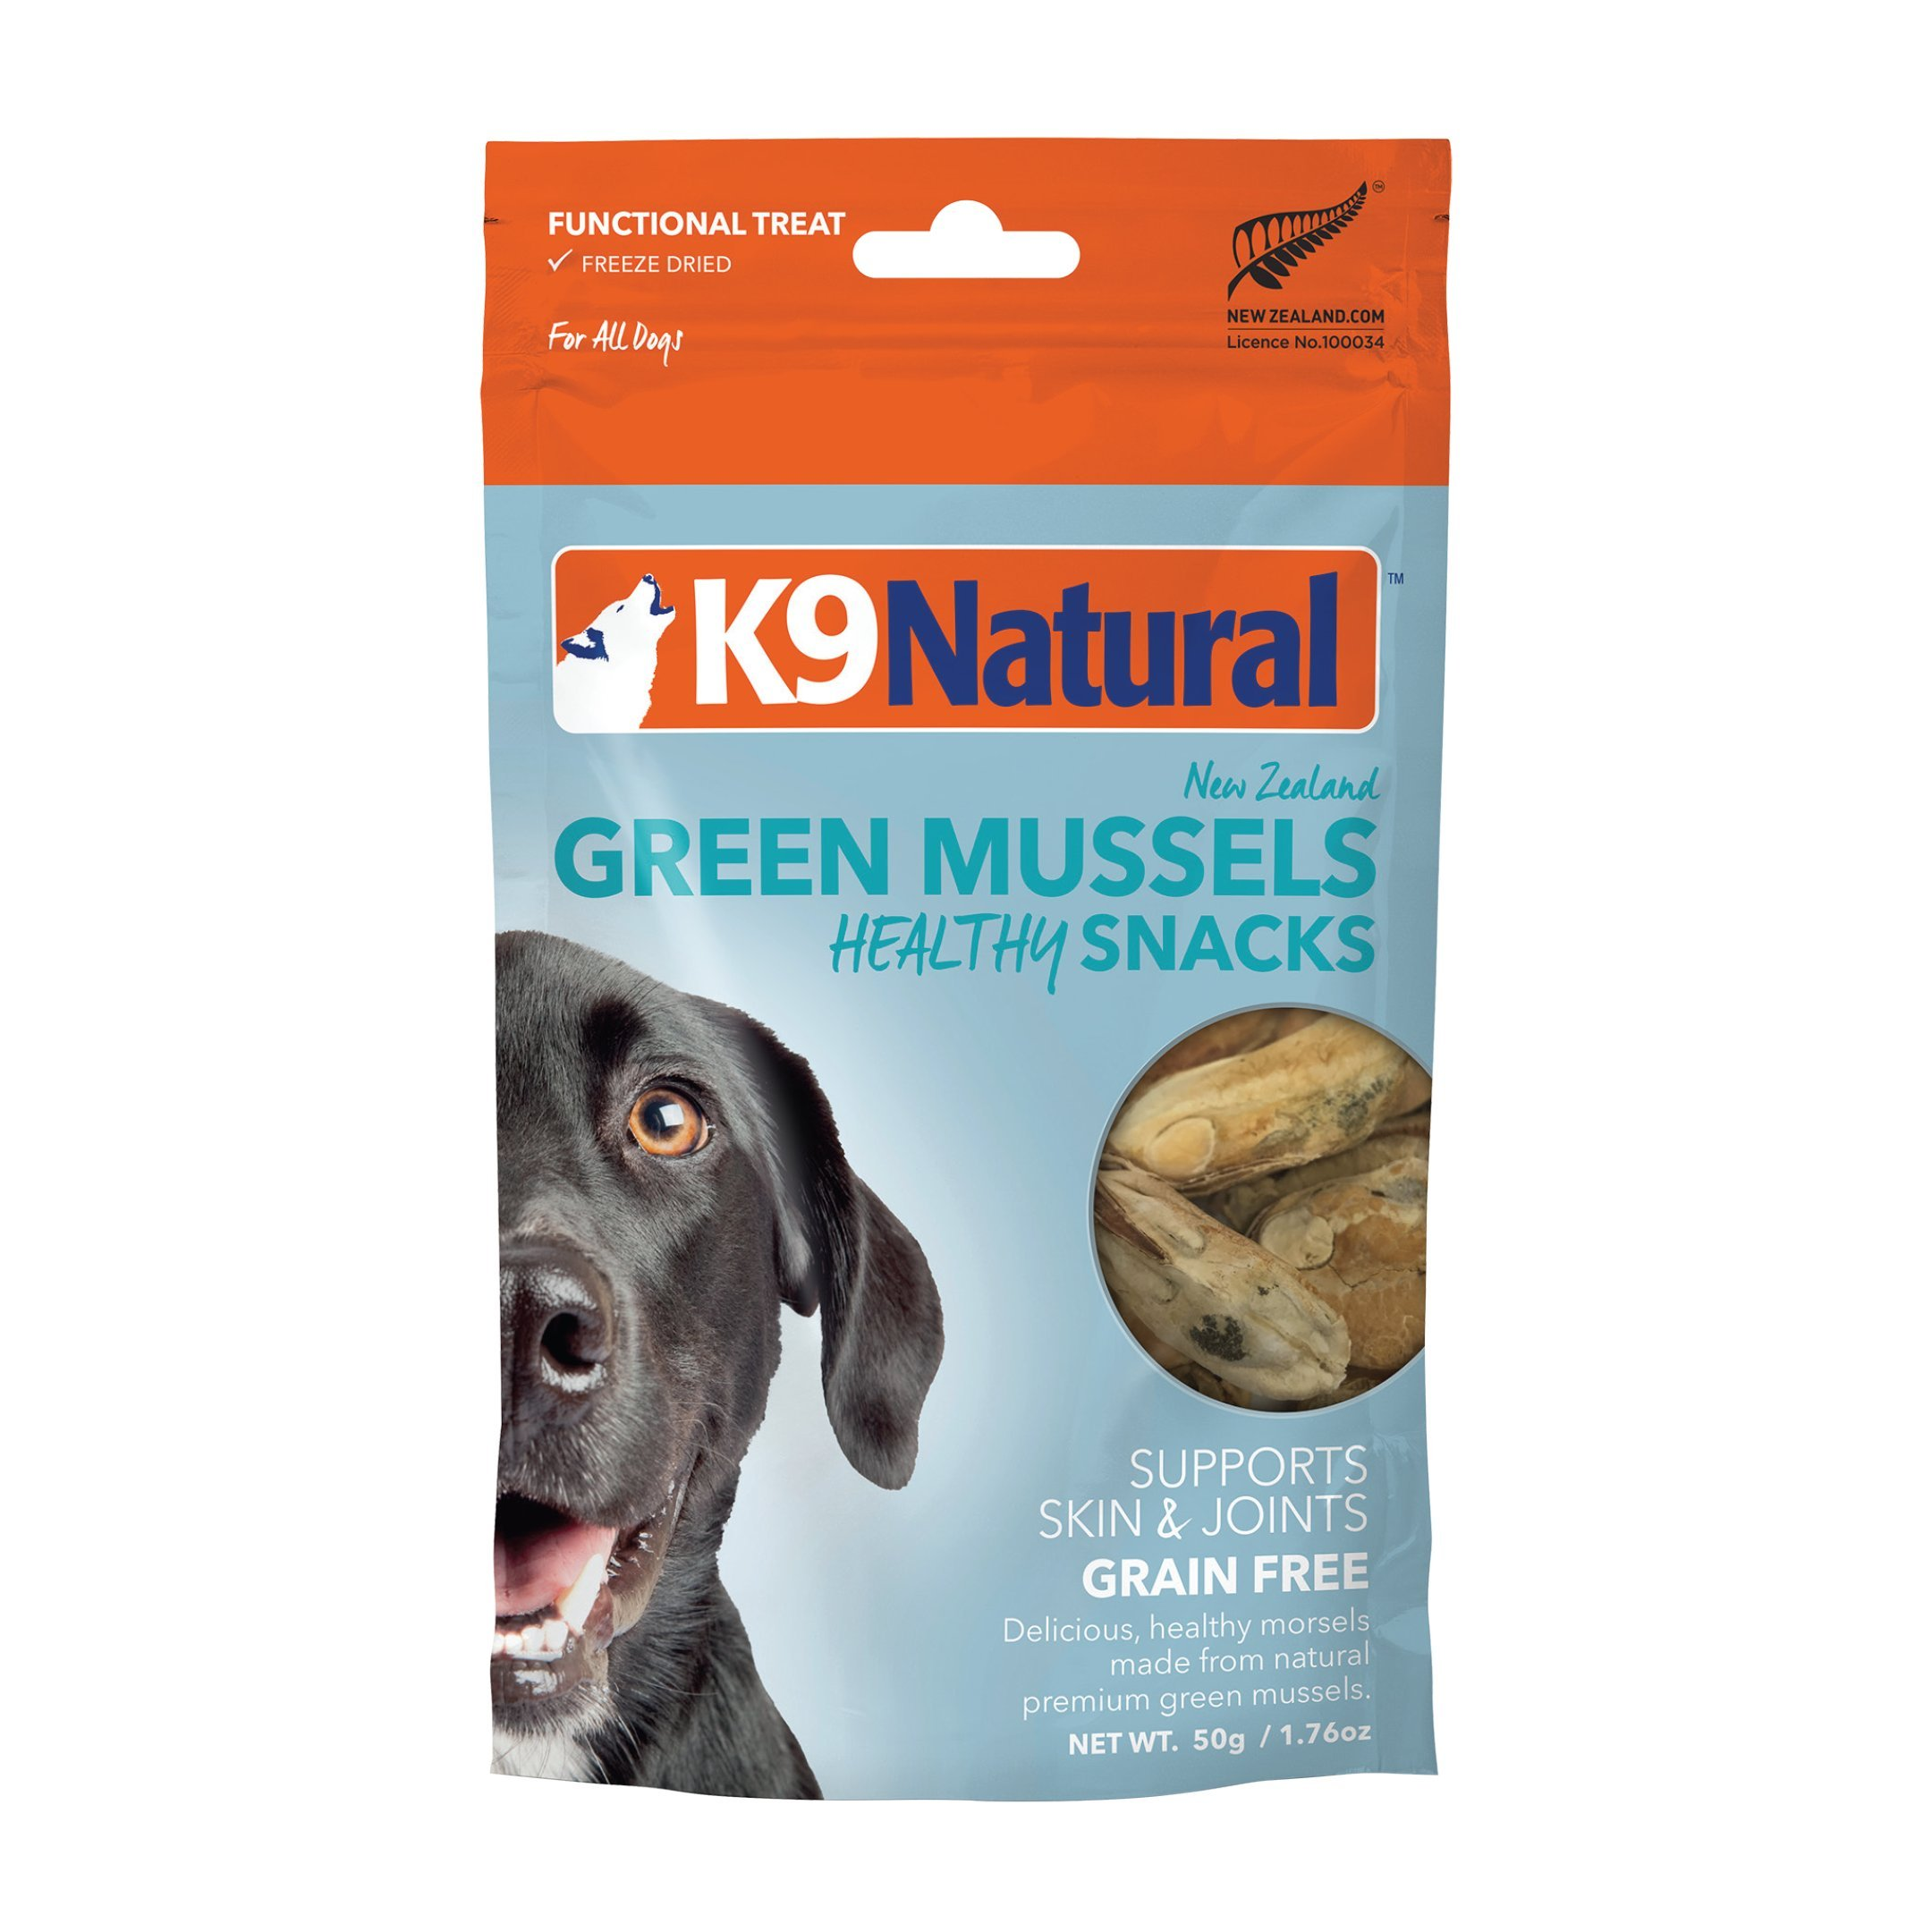 K9 Natural Freeze Dried Dog Treats By Perfect Grain Free, Healthy, Hypoallergenic Limited Ingredients Snacks For All Dog Types - Raw, Freeze Dried Treats - New Zealand Green Mussel Bites - 1.76oz